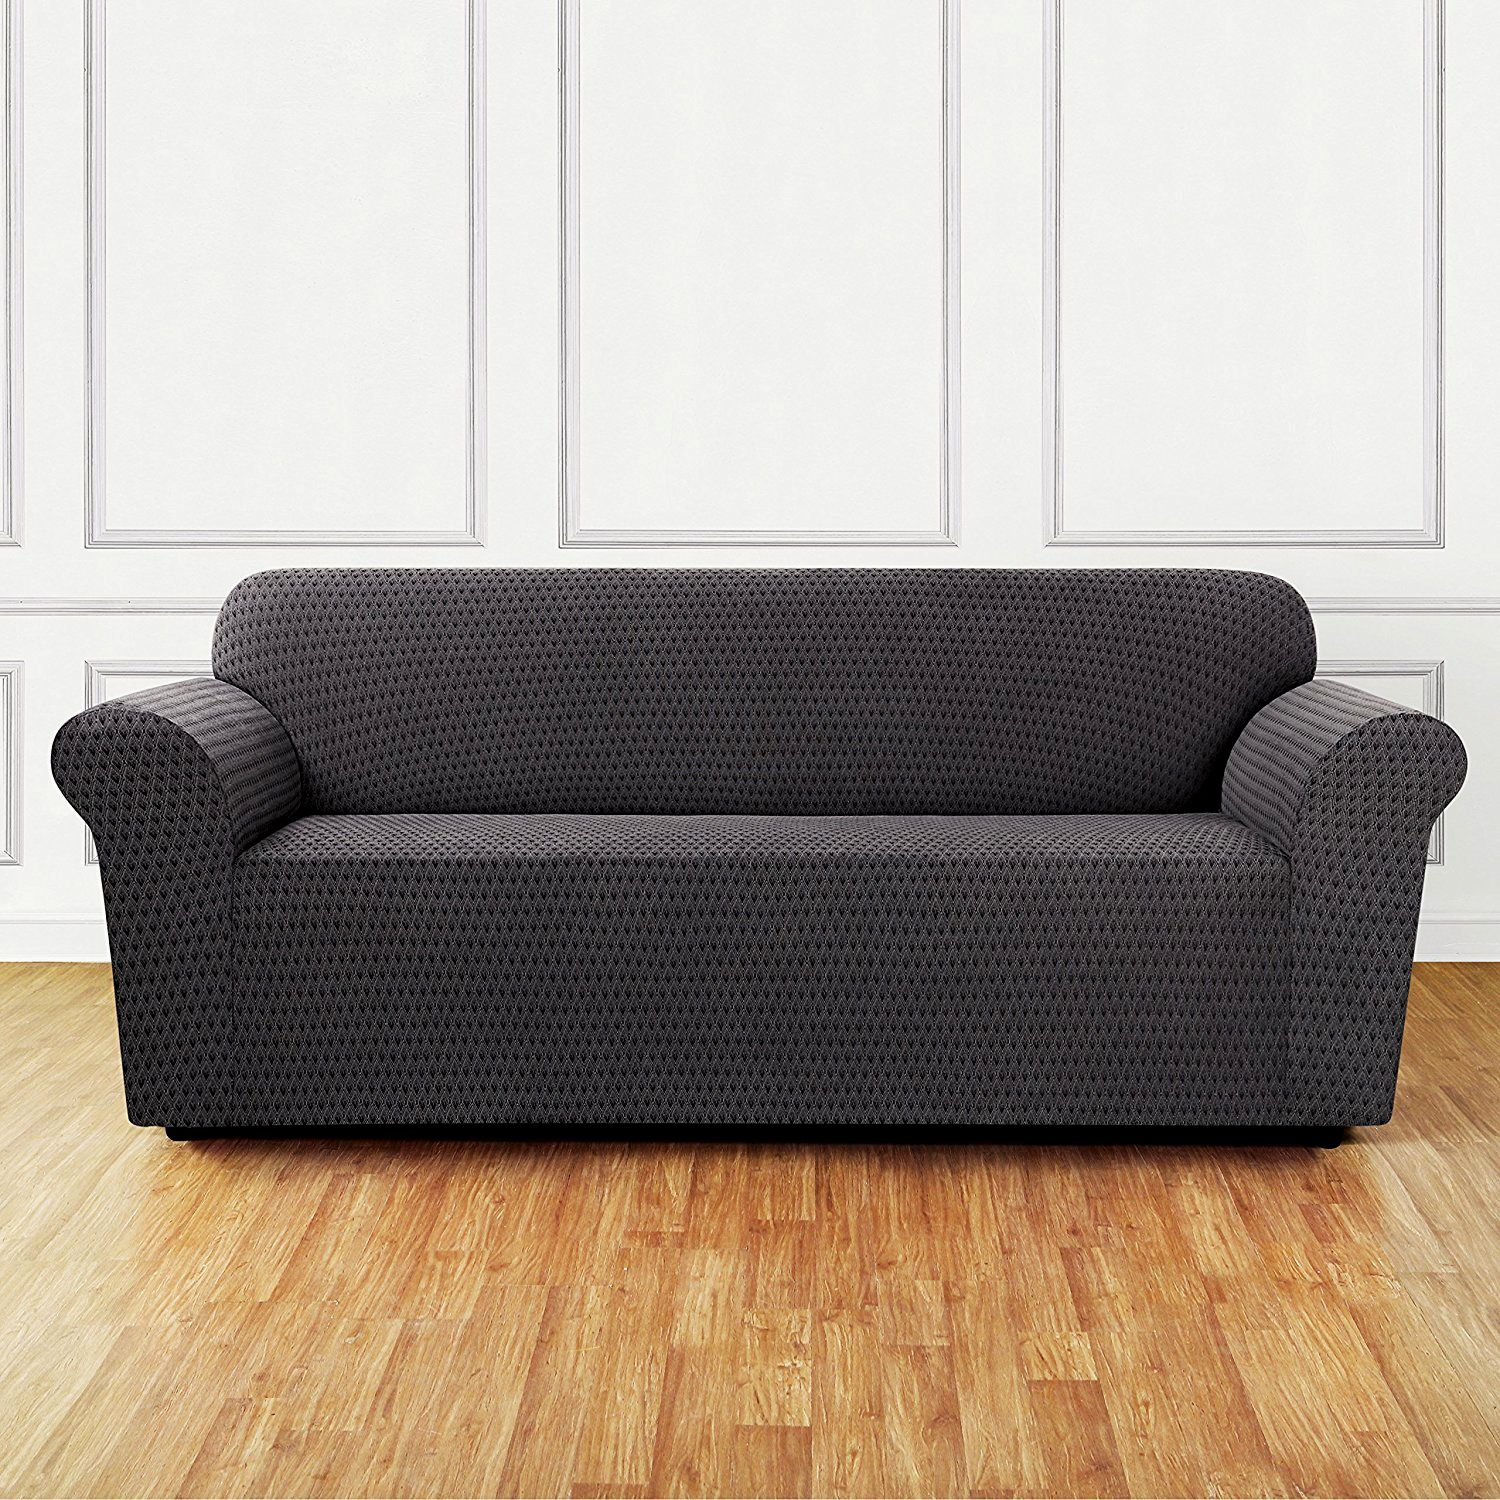 wonderful l shaped sofa covers online picture-Unique L Shaped sofa Covers Online Design